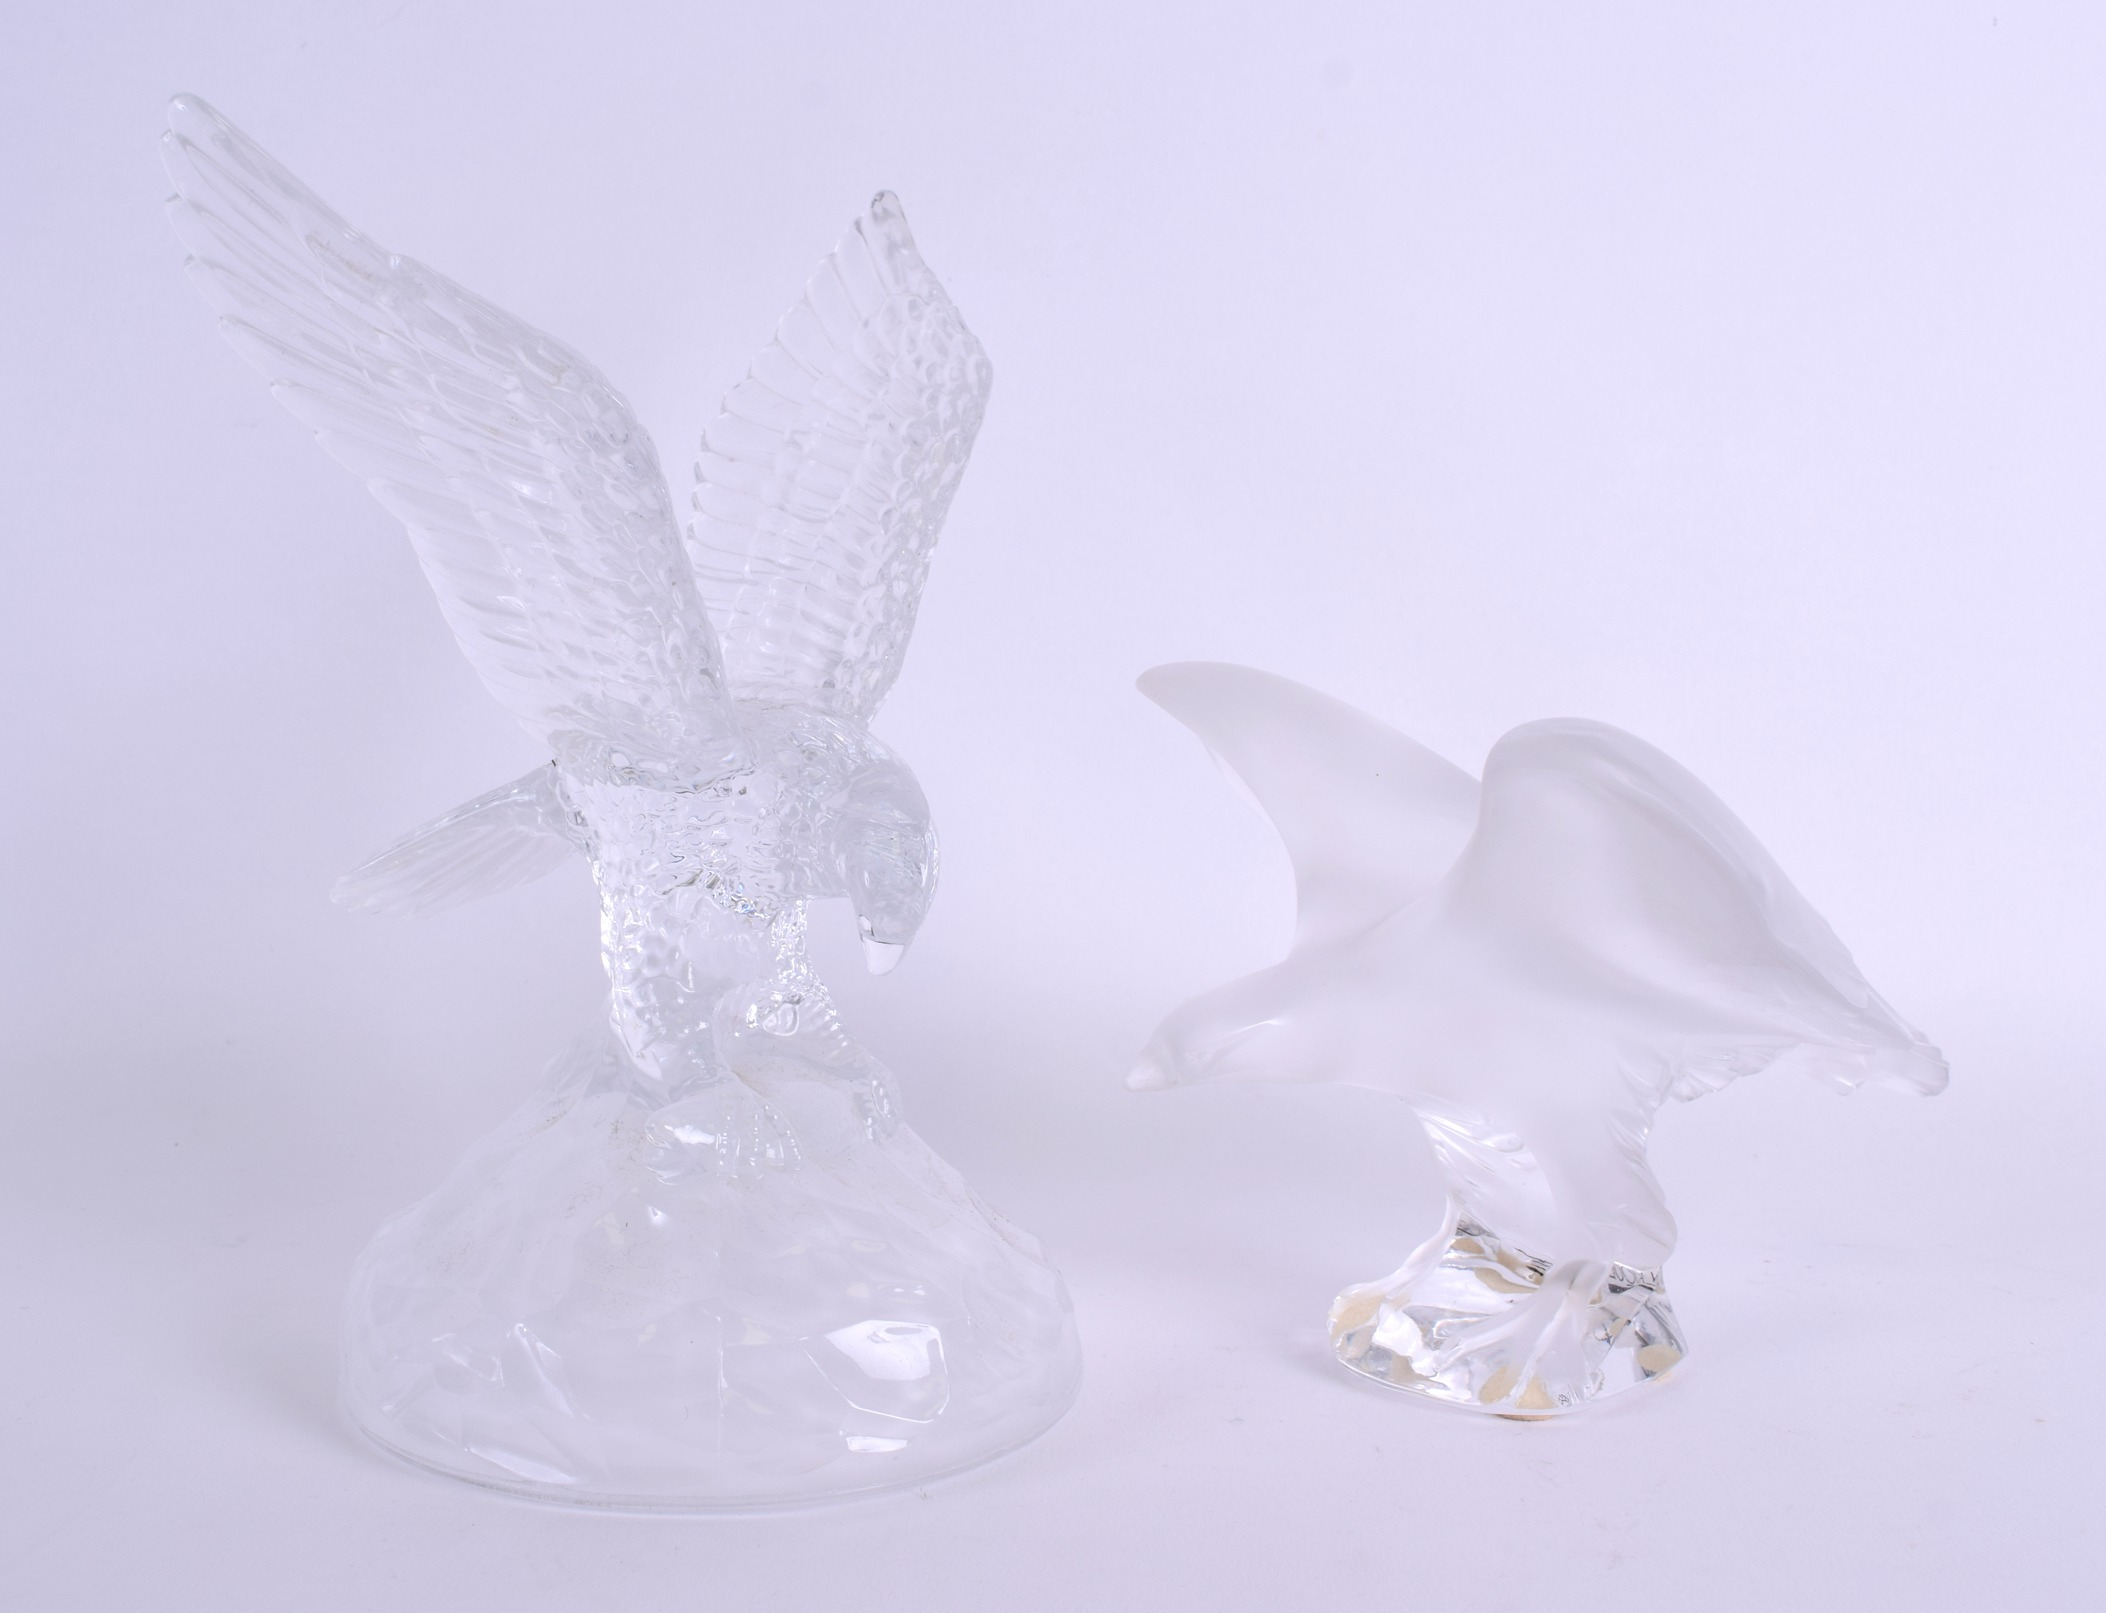 Lot 18 - A FRENCH LALIQUE FIGURE OF A BIRD together with another pressed glass eagle. Lalique 19 cm x 12